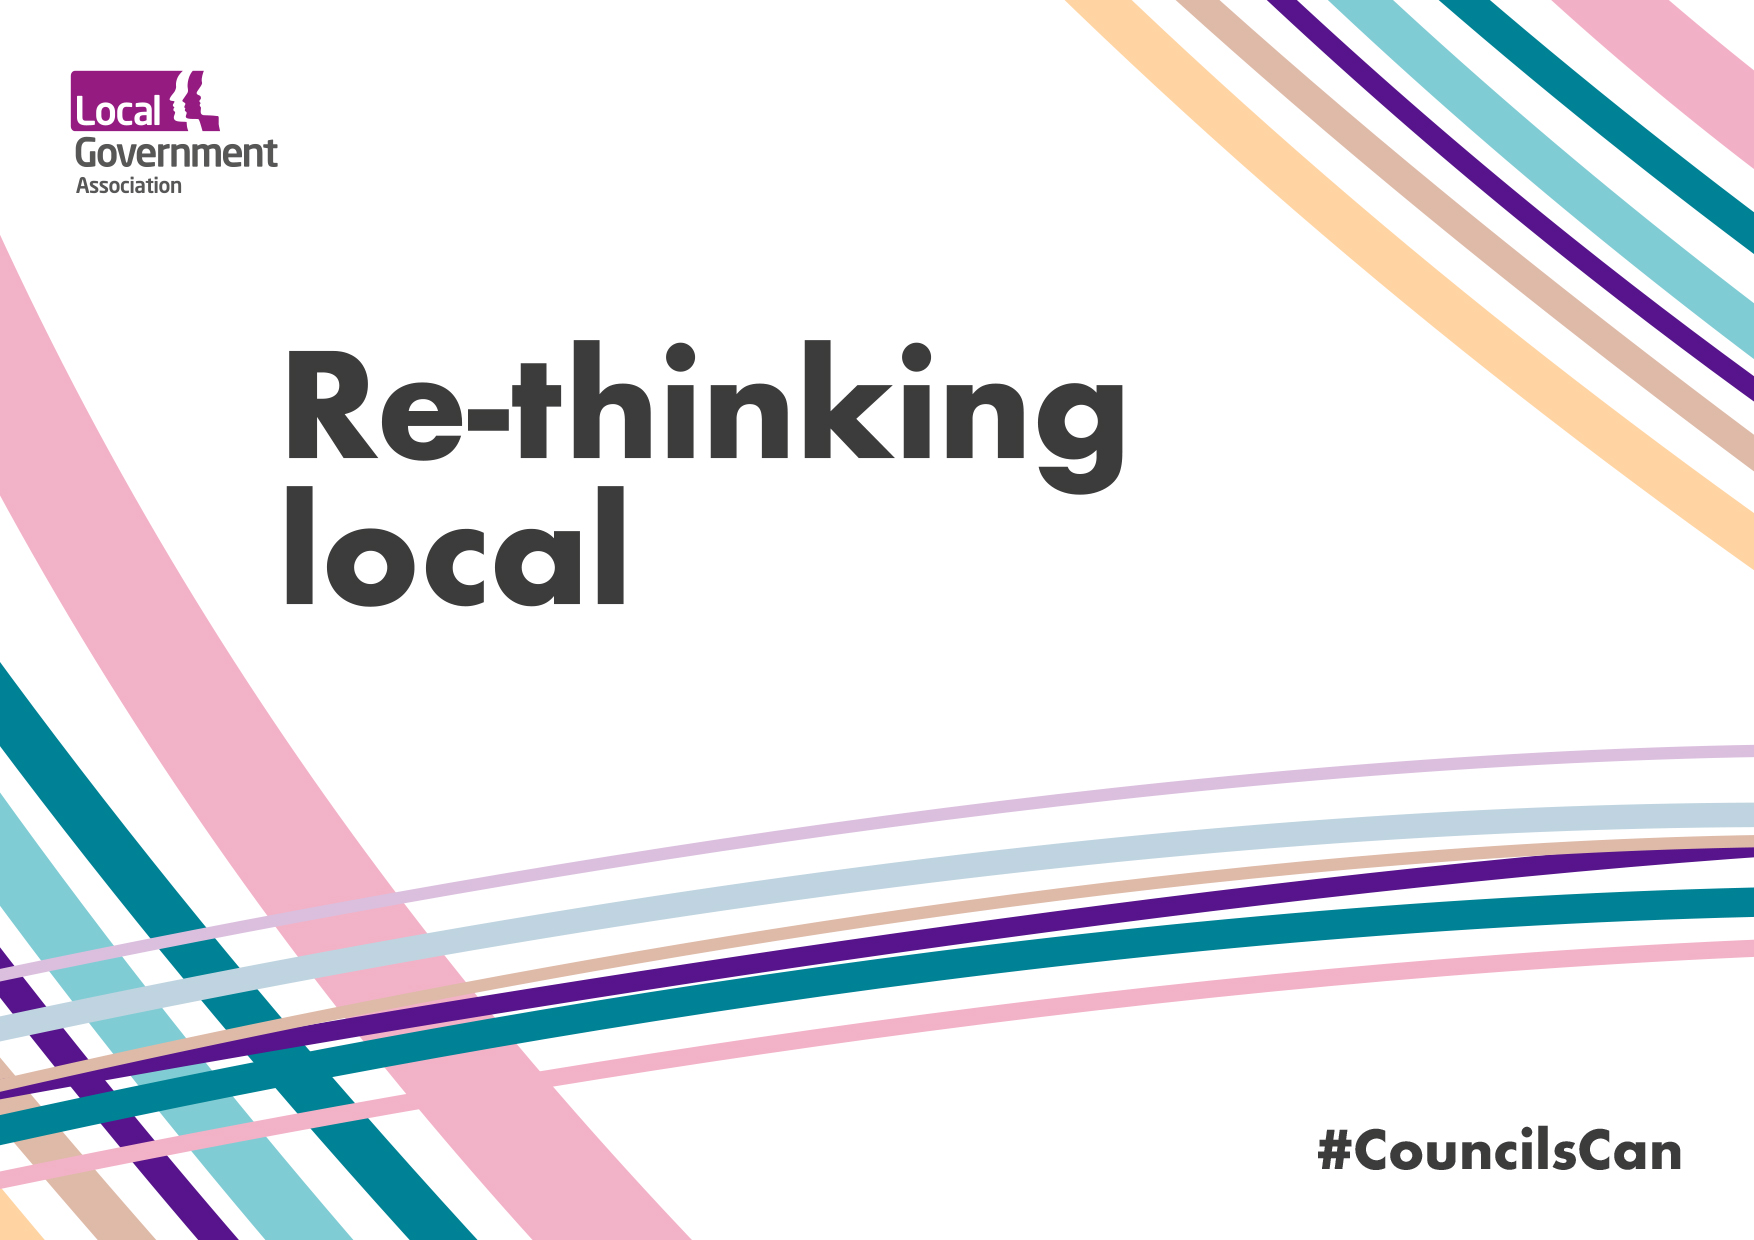 Re-thinking local